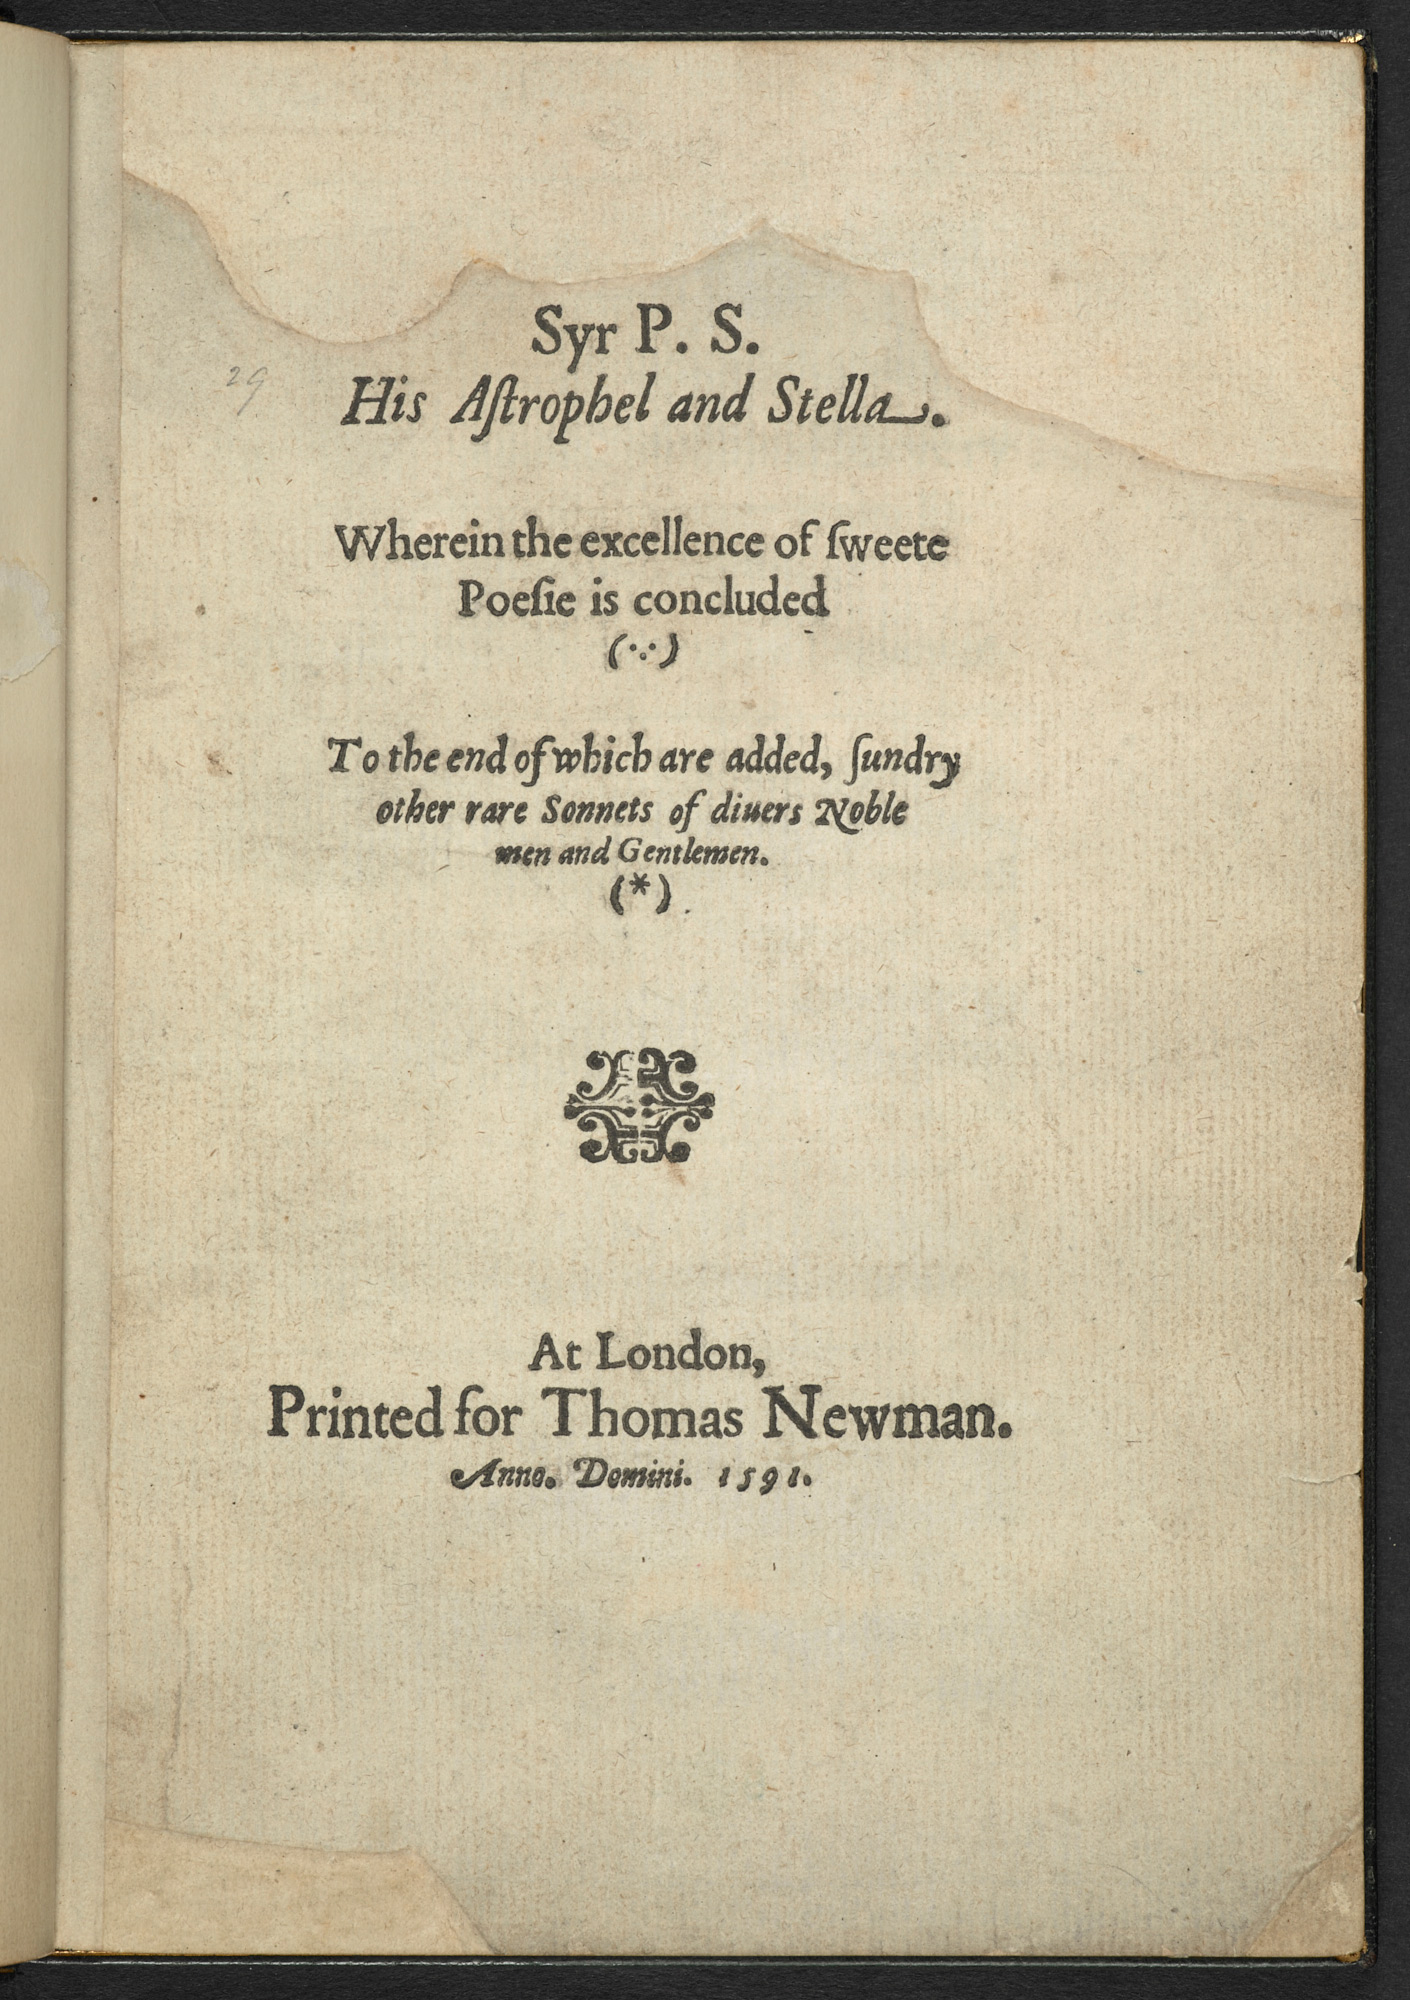 Philip Sidney's Astrophil and Stella, 1591